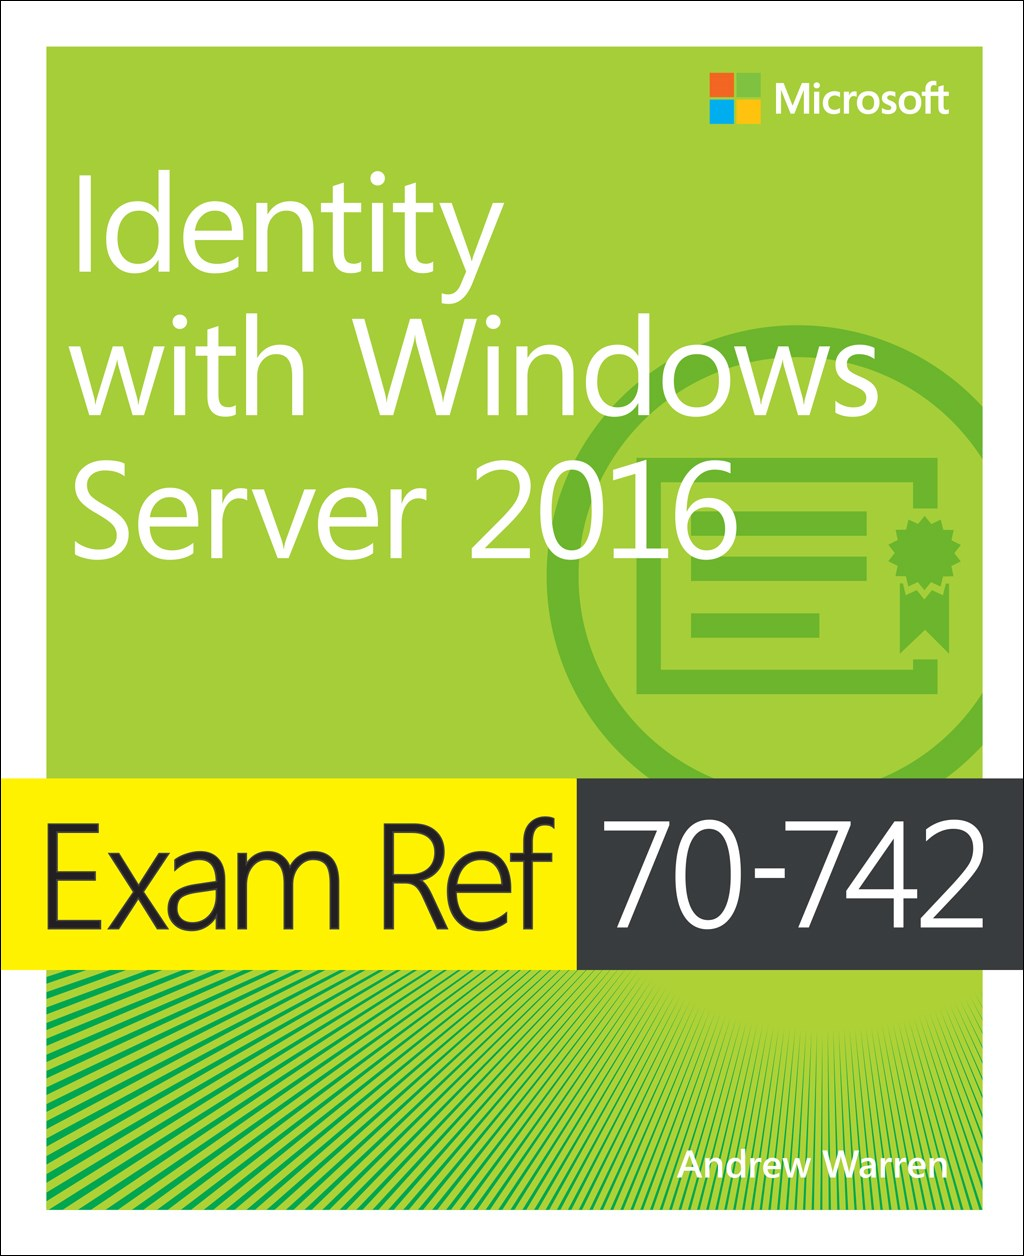 Exam Ref 70-742 Identity with Windows Server 2016